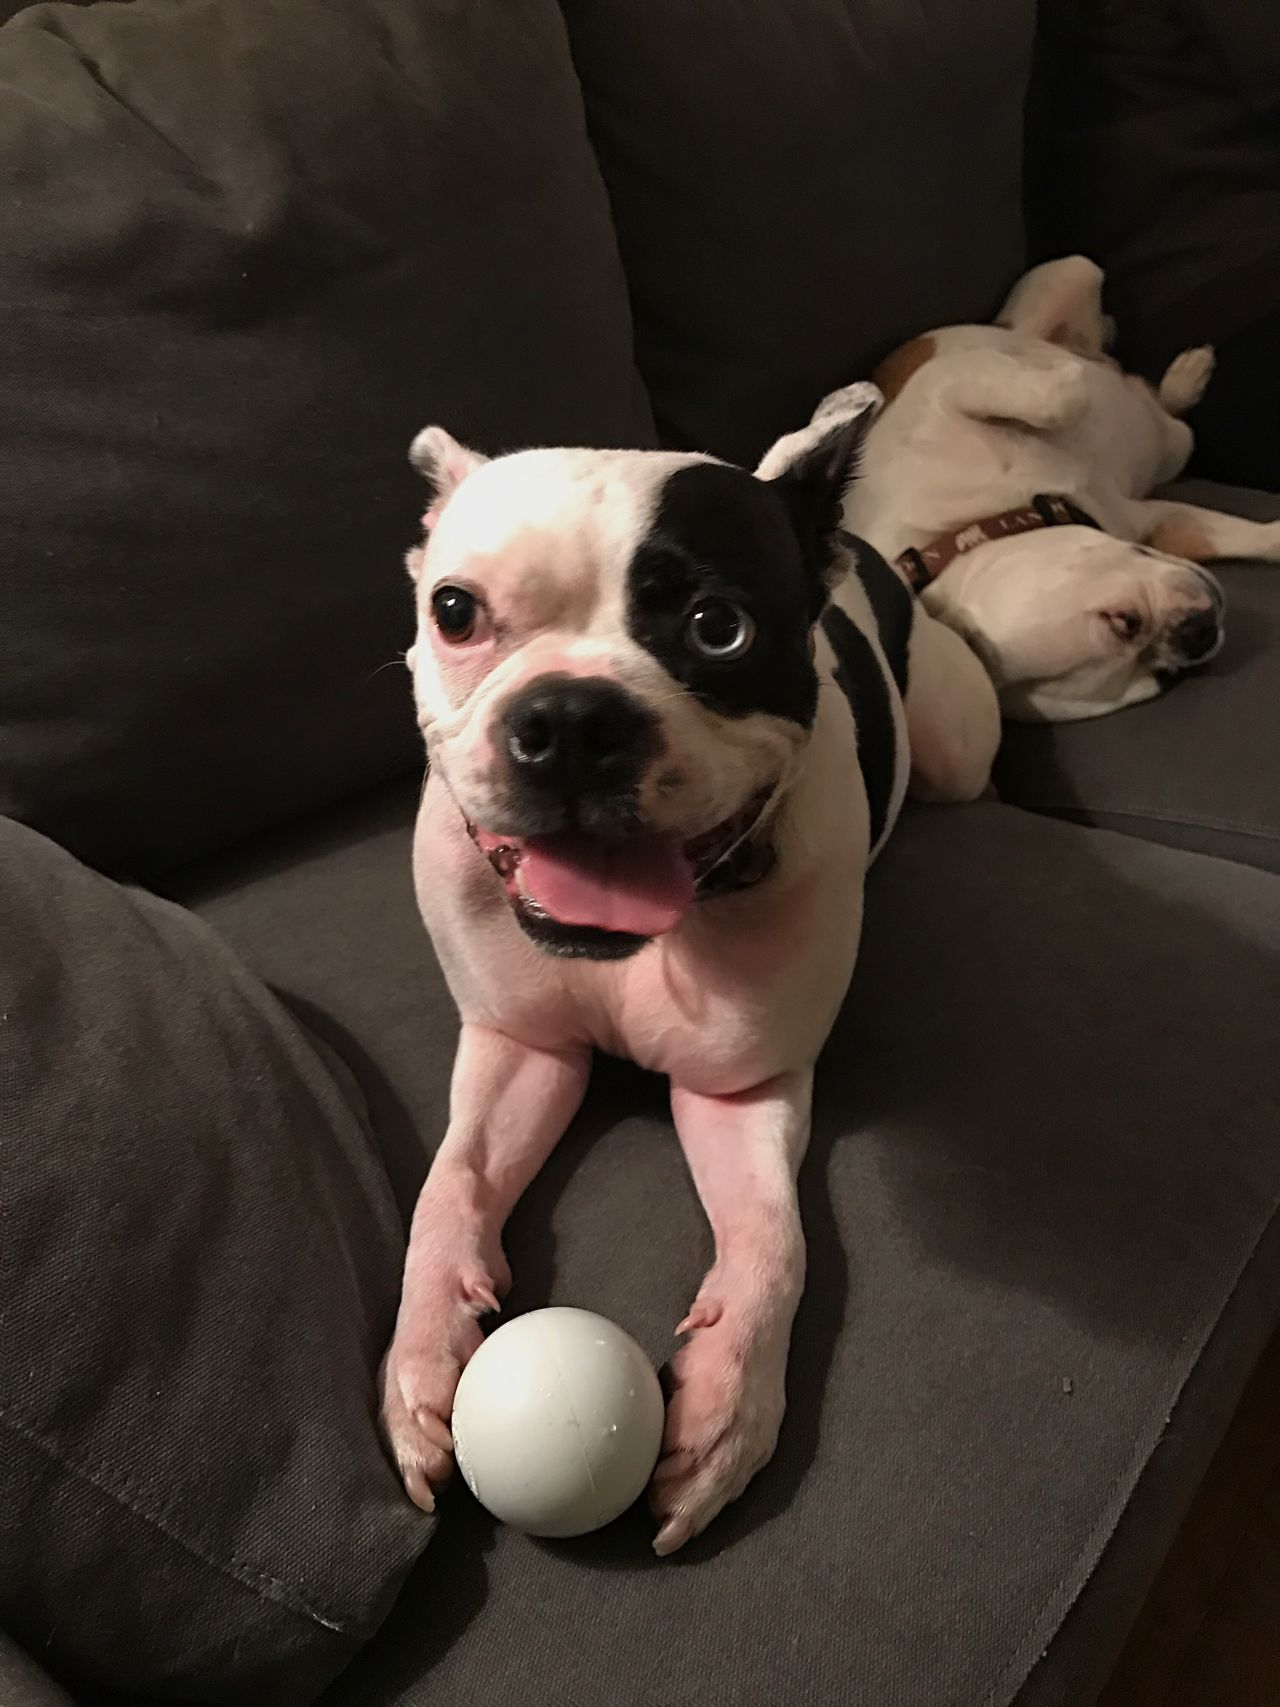 Enjoy The New Normal hanging out with friends - dogs with ball on sofa Looking At Camera Pets